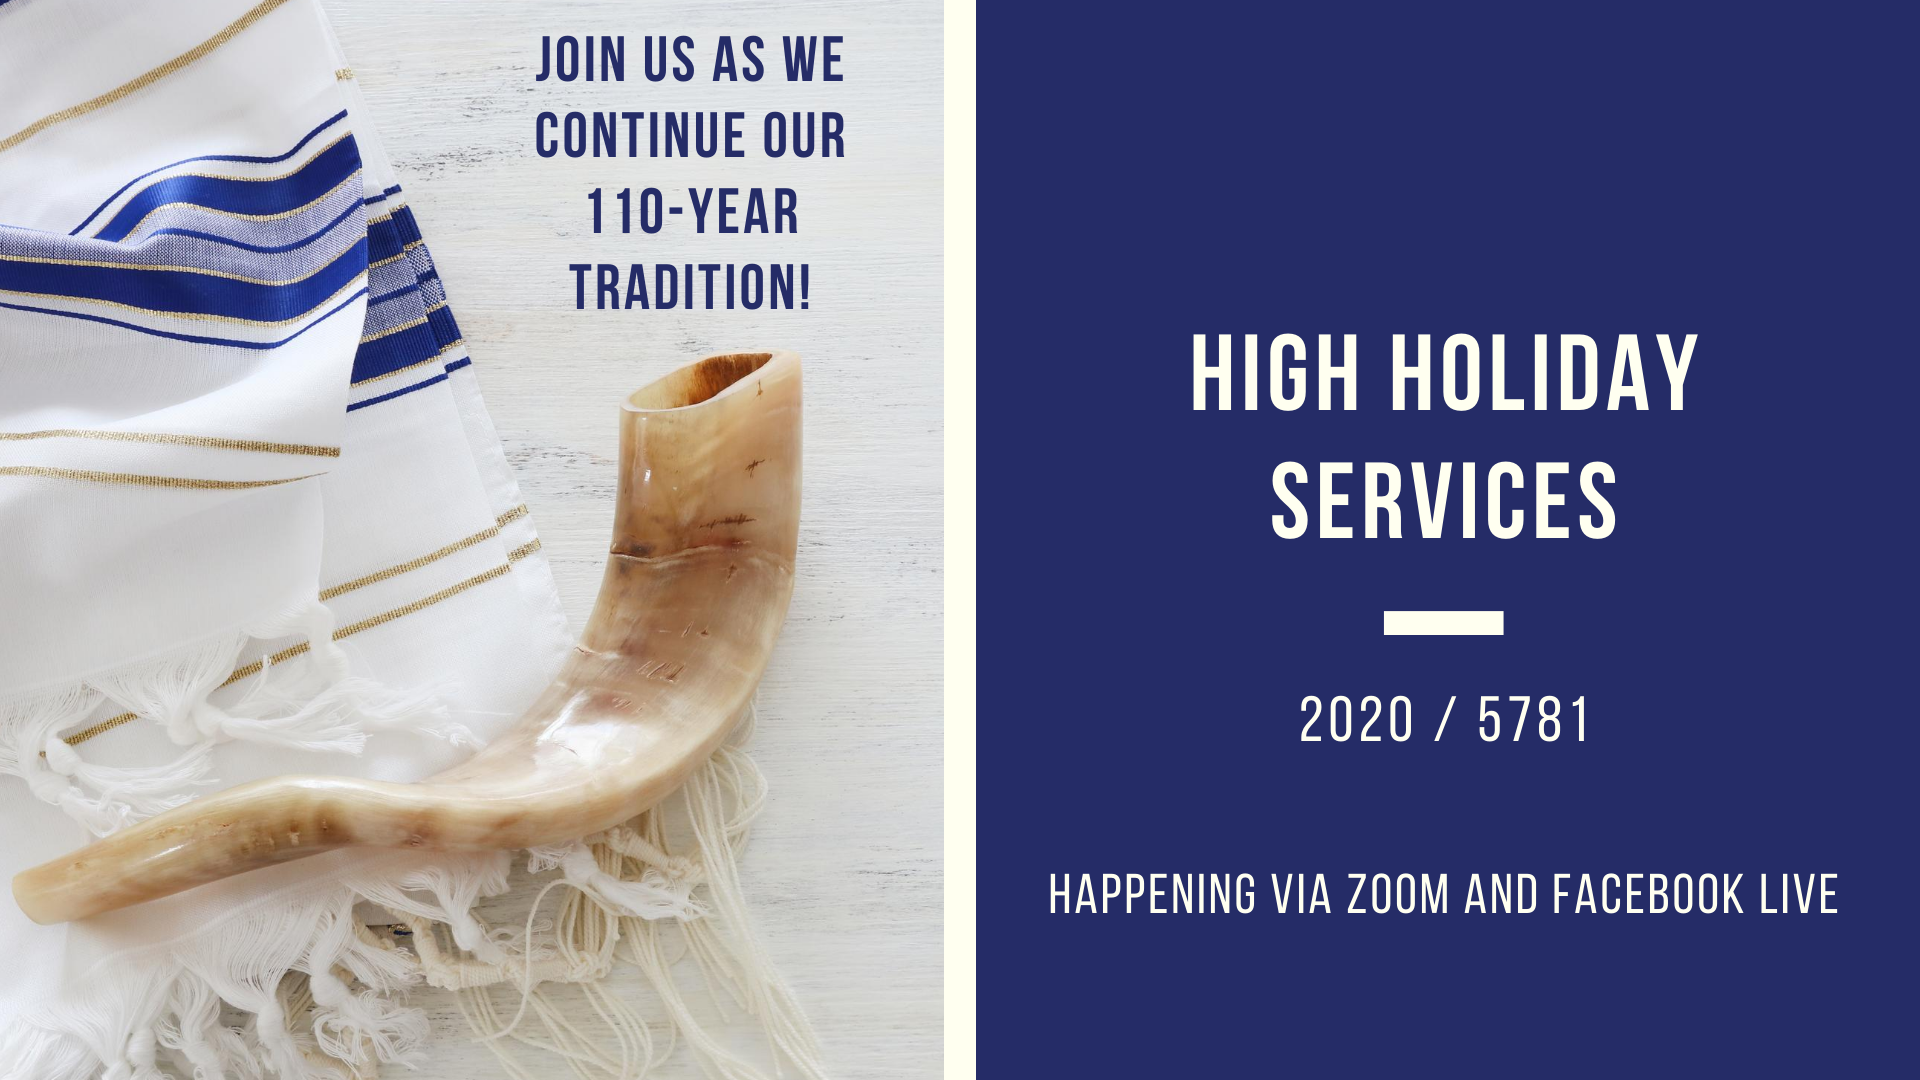 High Holiday Services via Zoom & Facebook Live